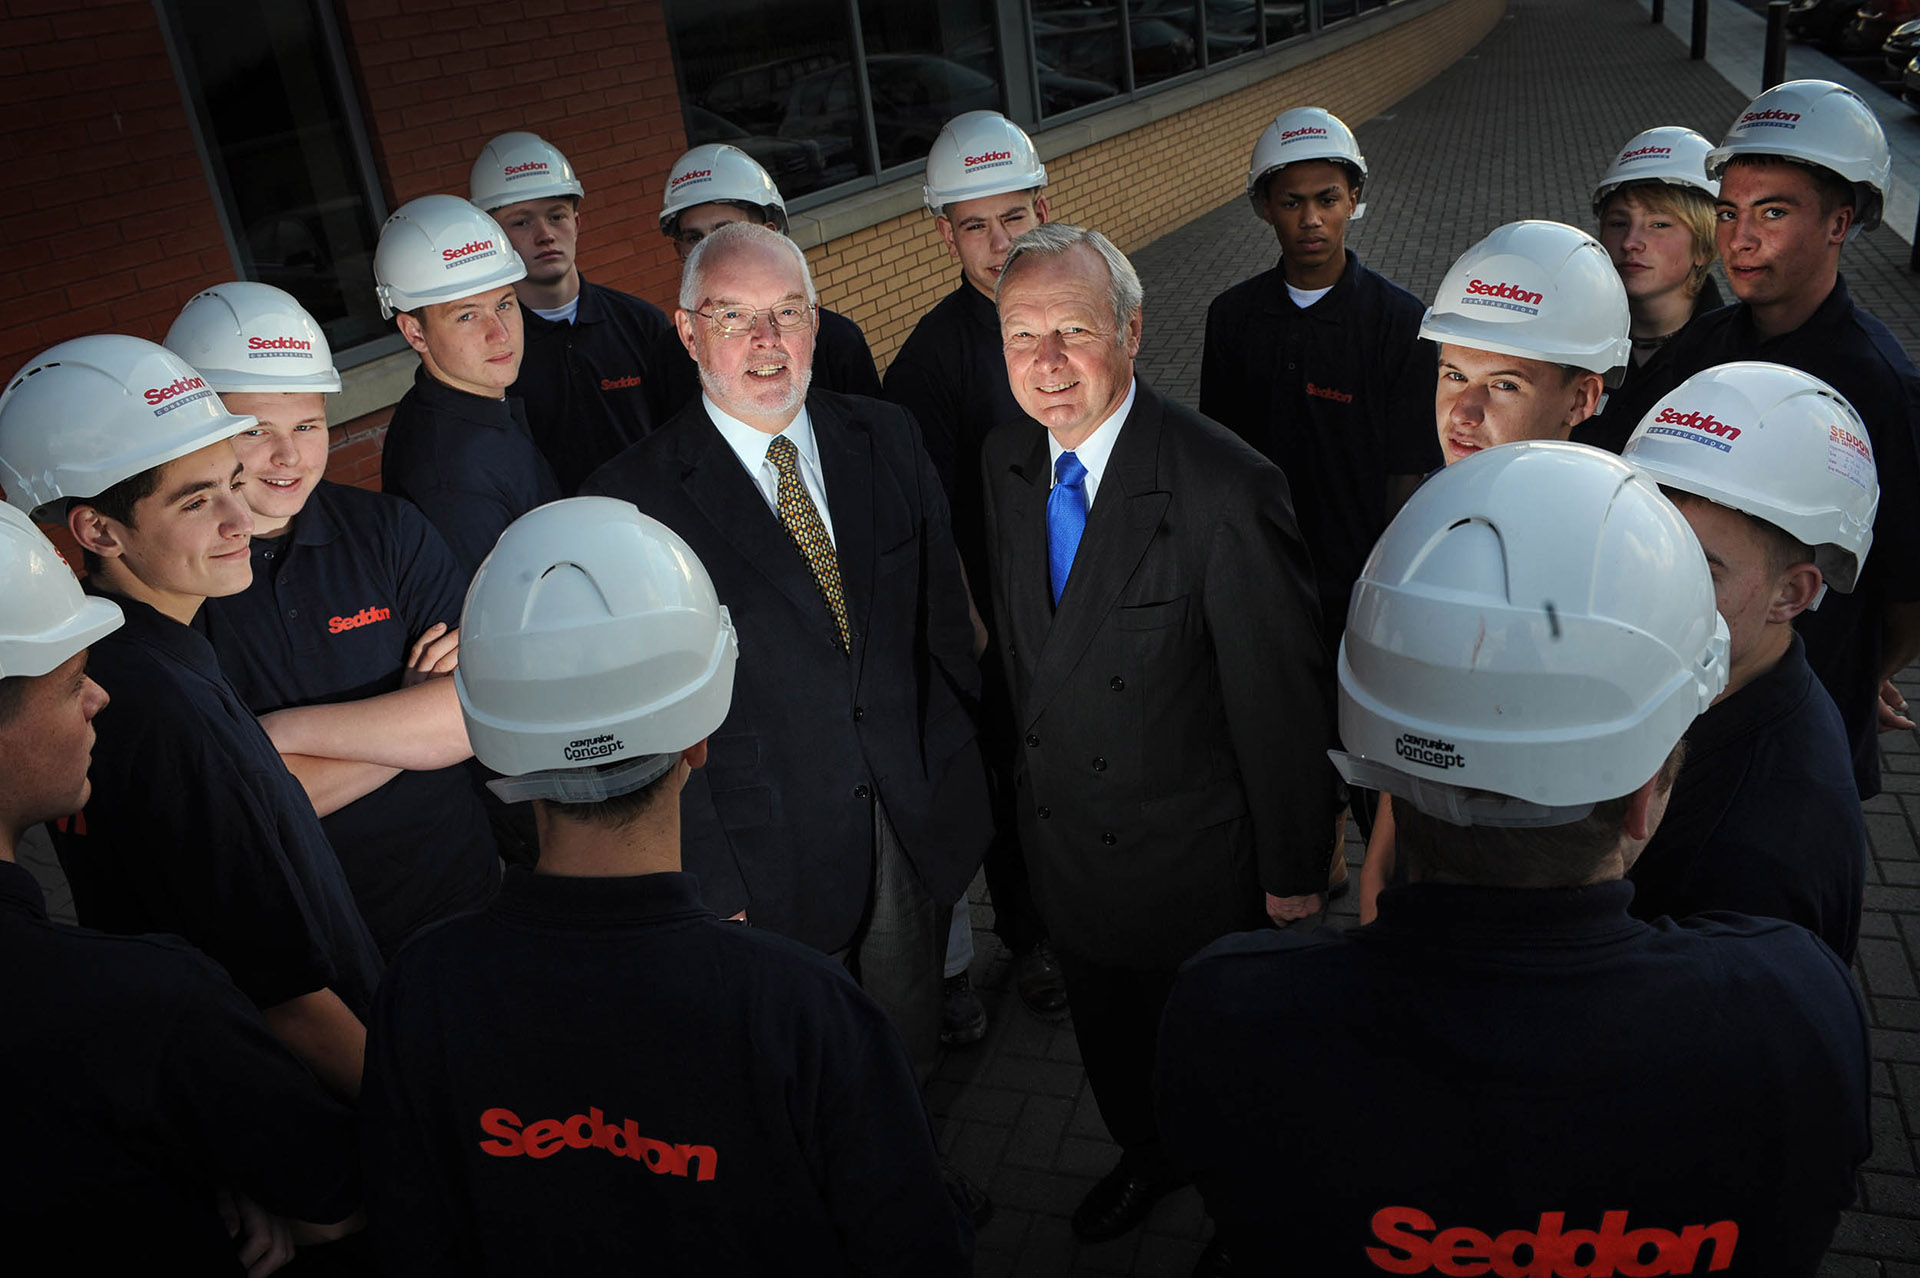 Photograph at Seddon Construction and Maintenance with Chairman and Apprentices, commercial photography by Jon Parker Lee